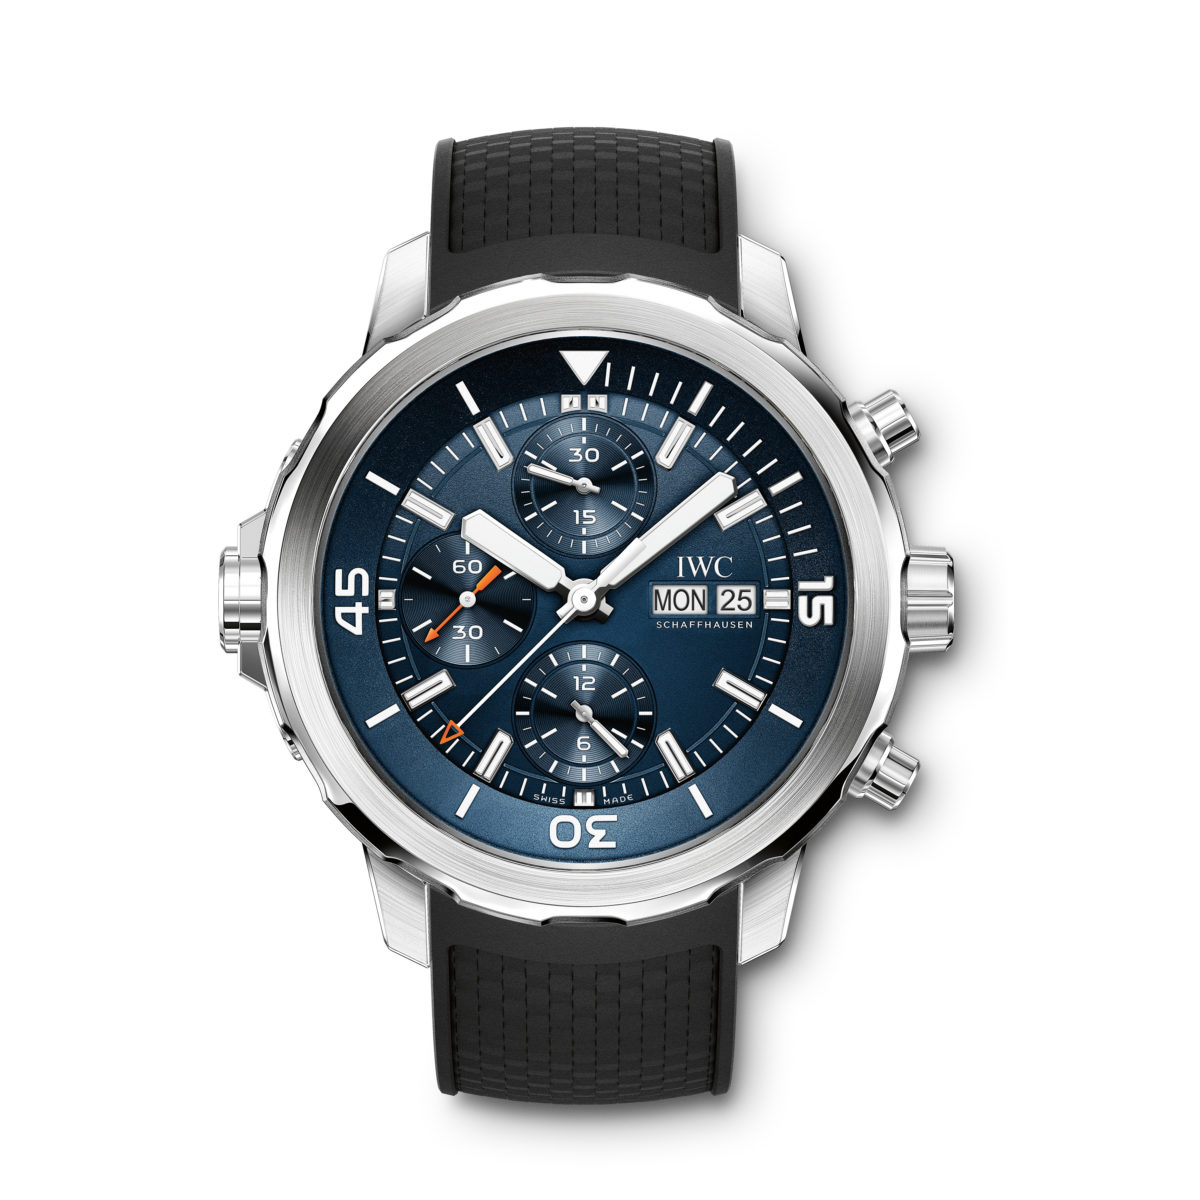 IWC Aquatimer Chronograph Edition _Expedition Jacques-Yves Cousteau_ IW376805 Dial